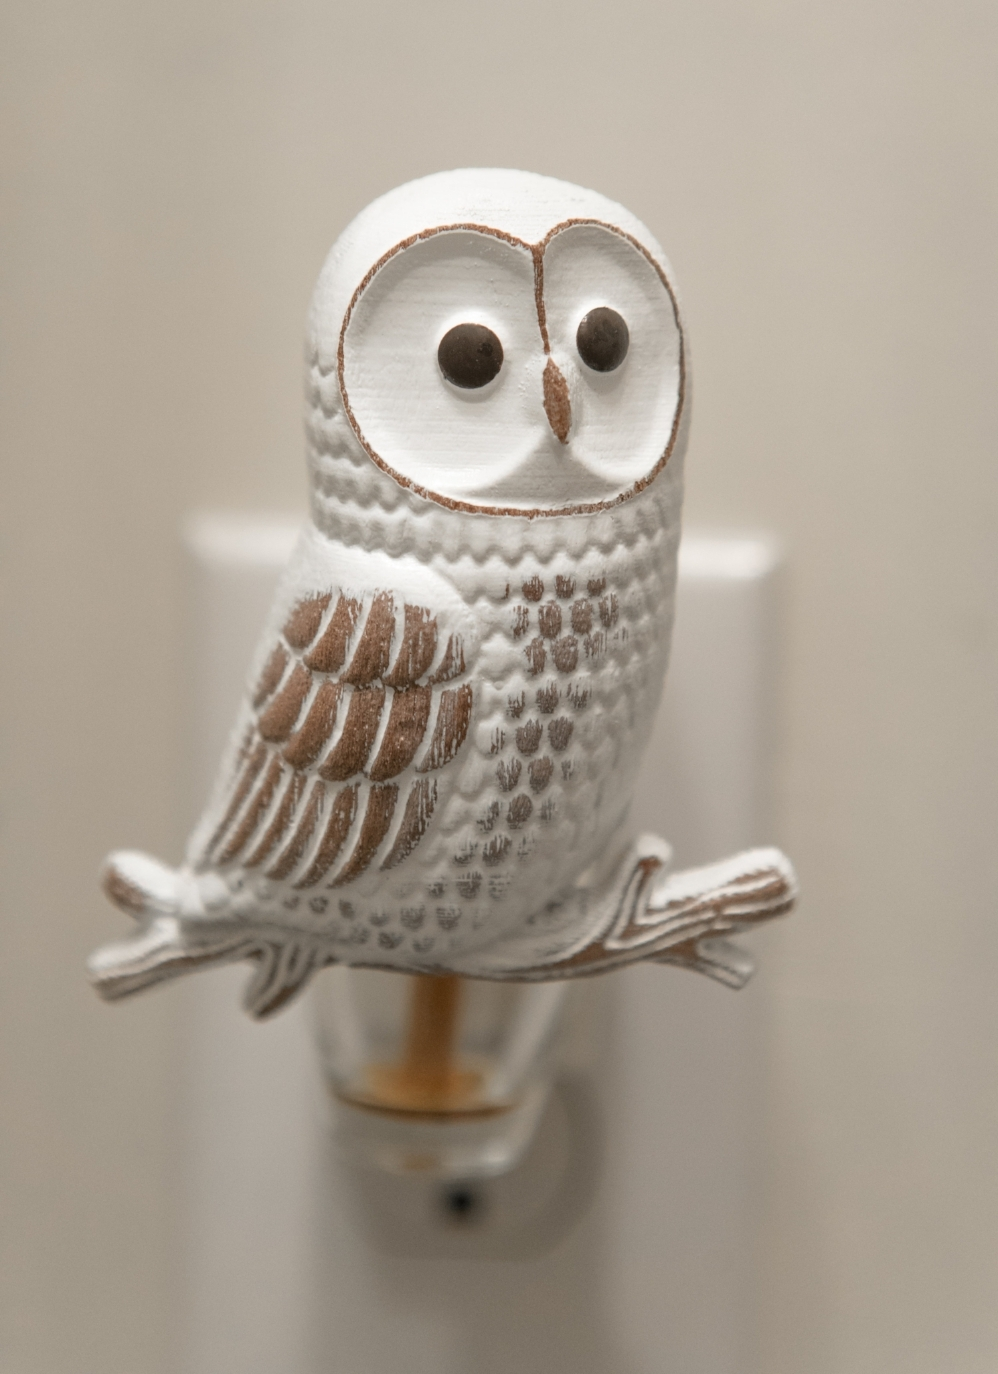 This owl Wallflower from Bath and Body Works reminded me so much of Hedwig!